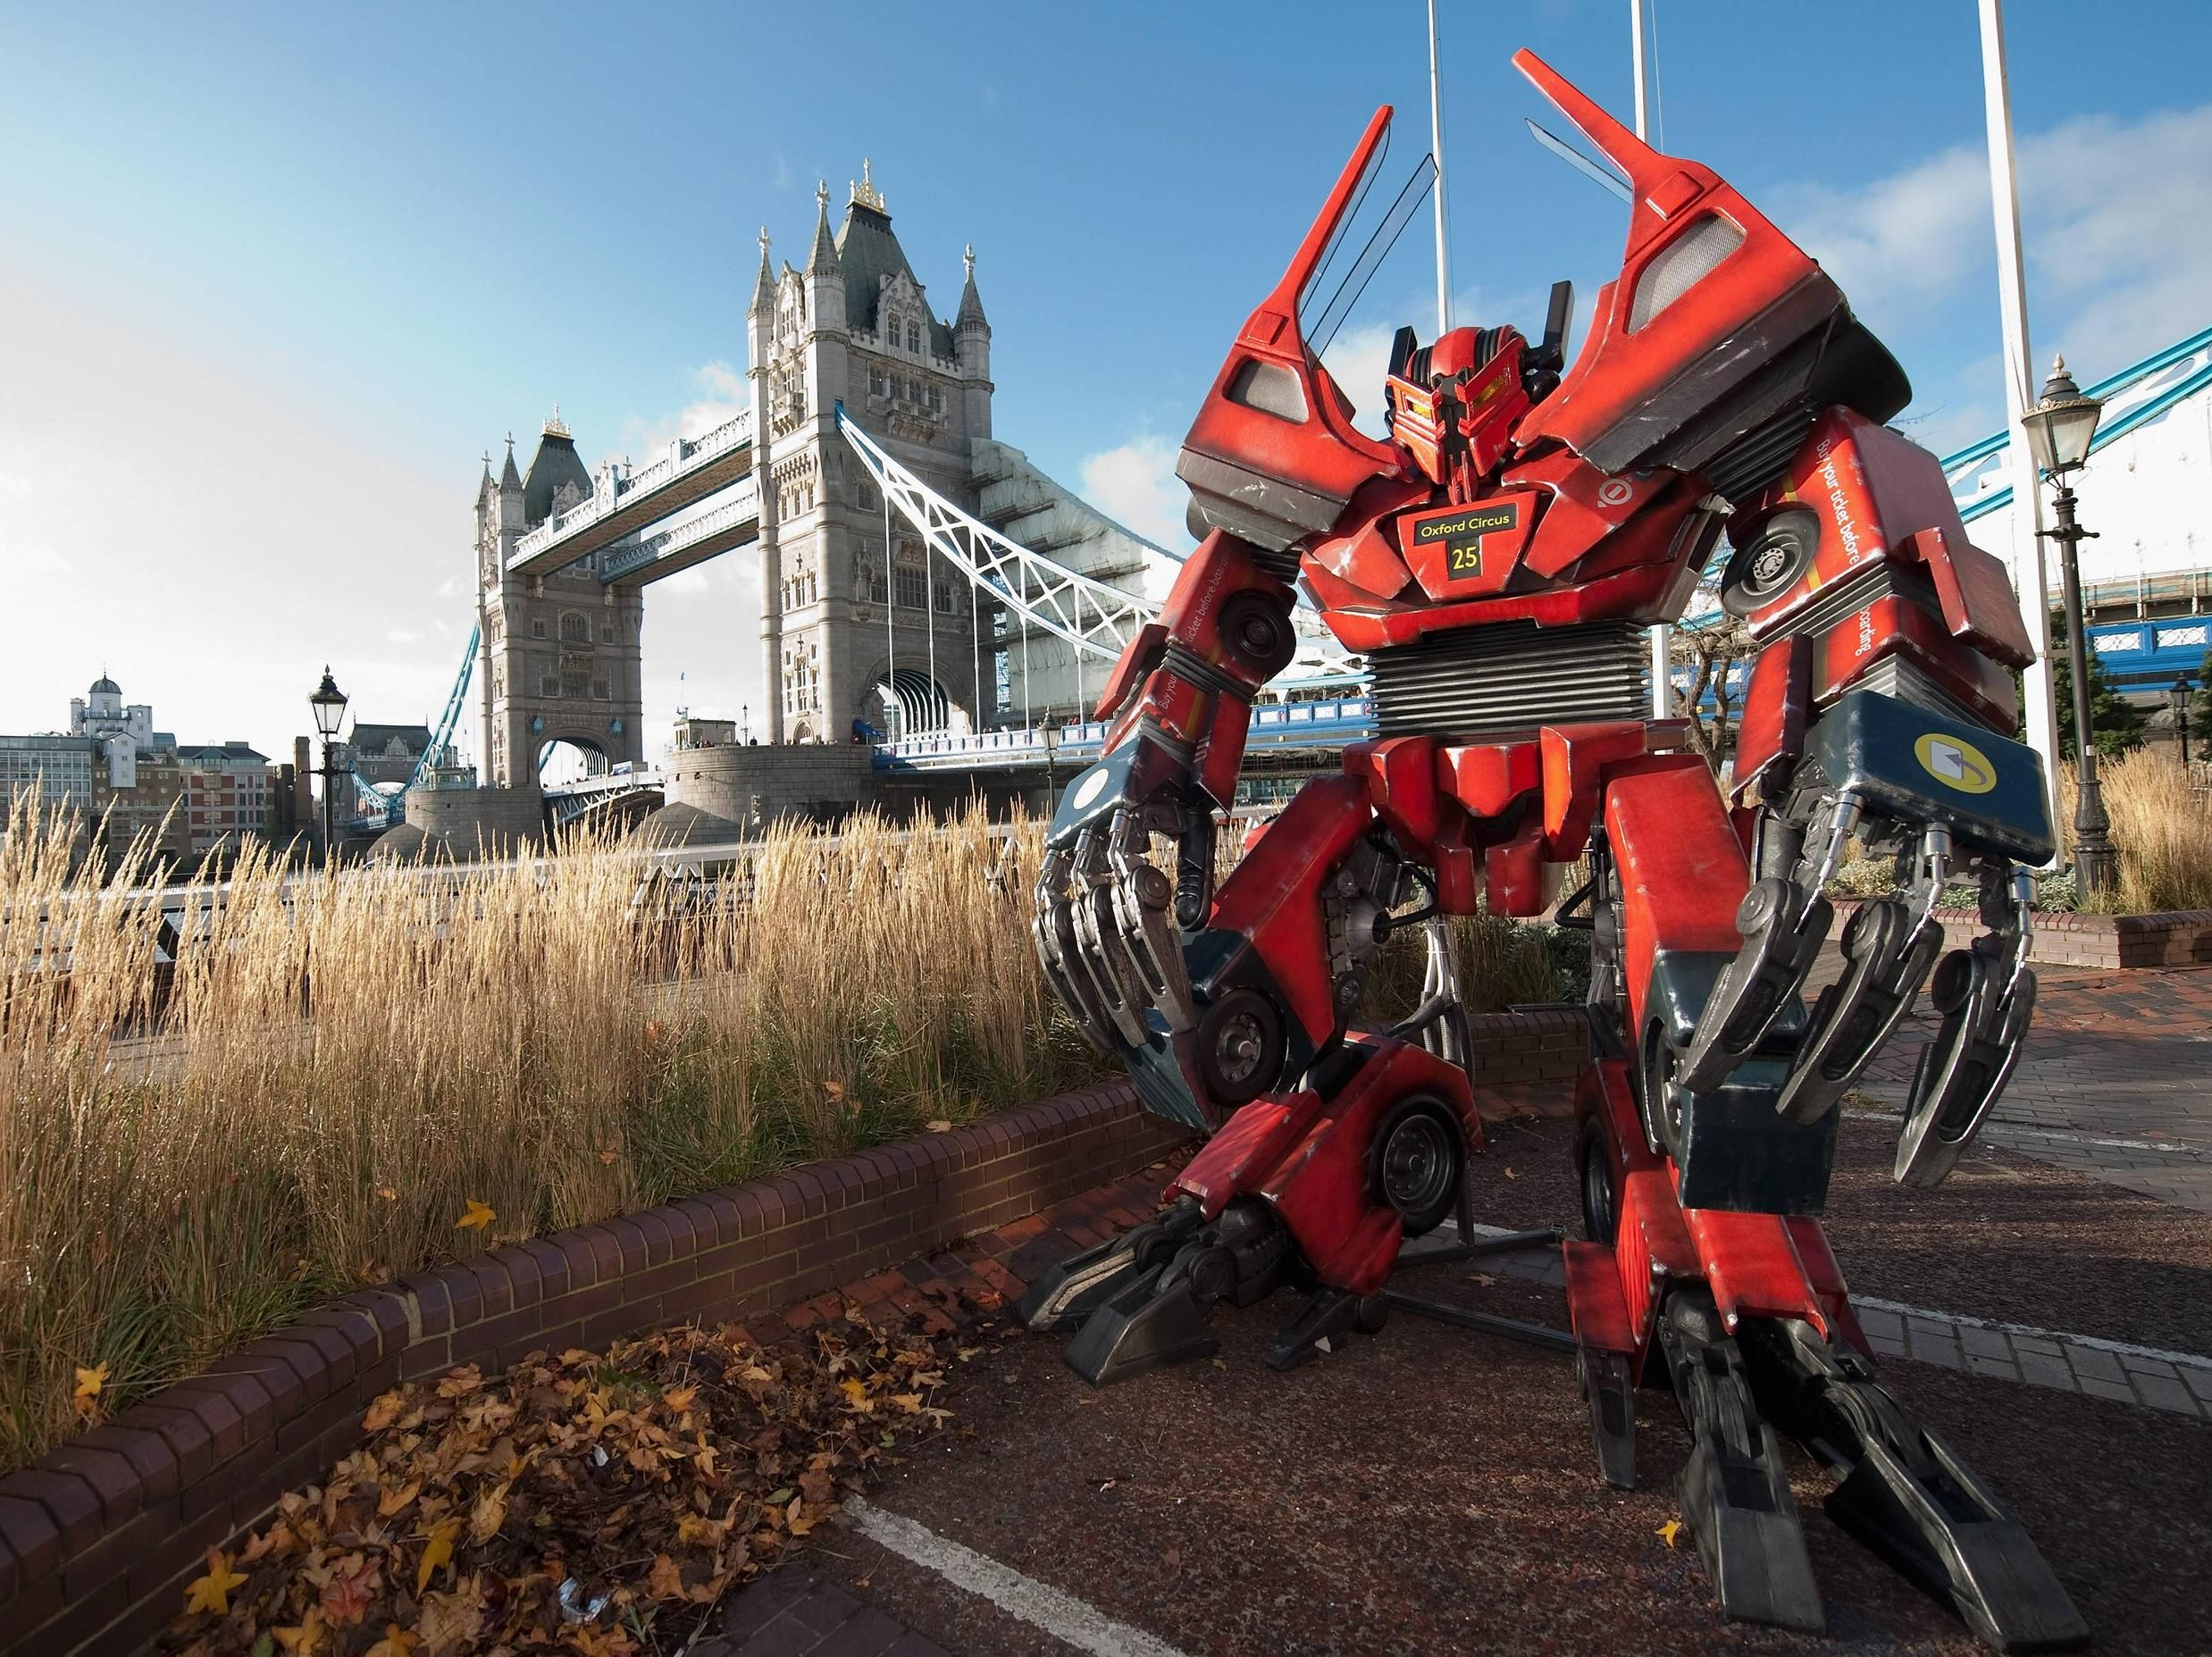 Made From A London Bus With Images Transformer Robots